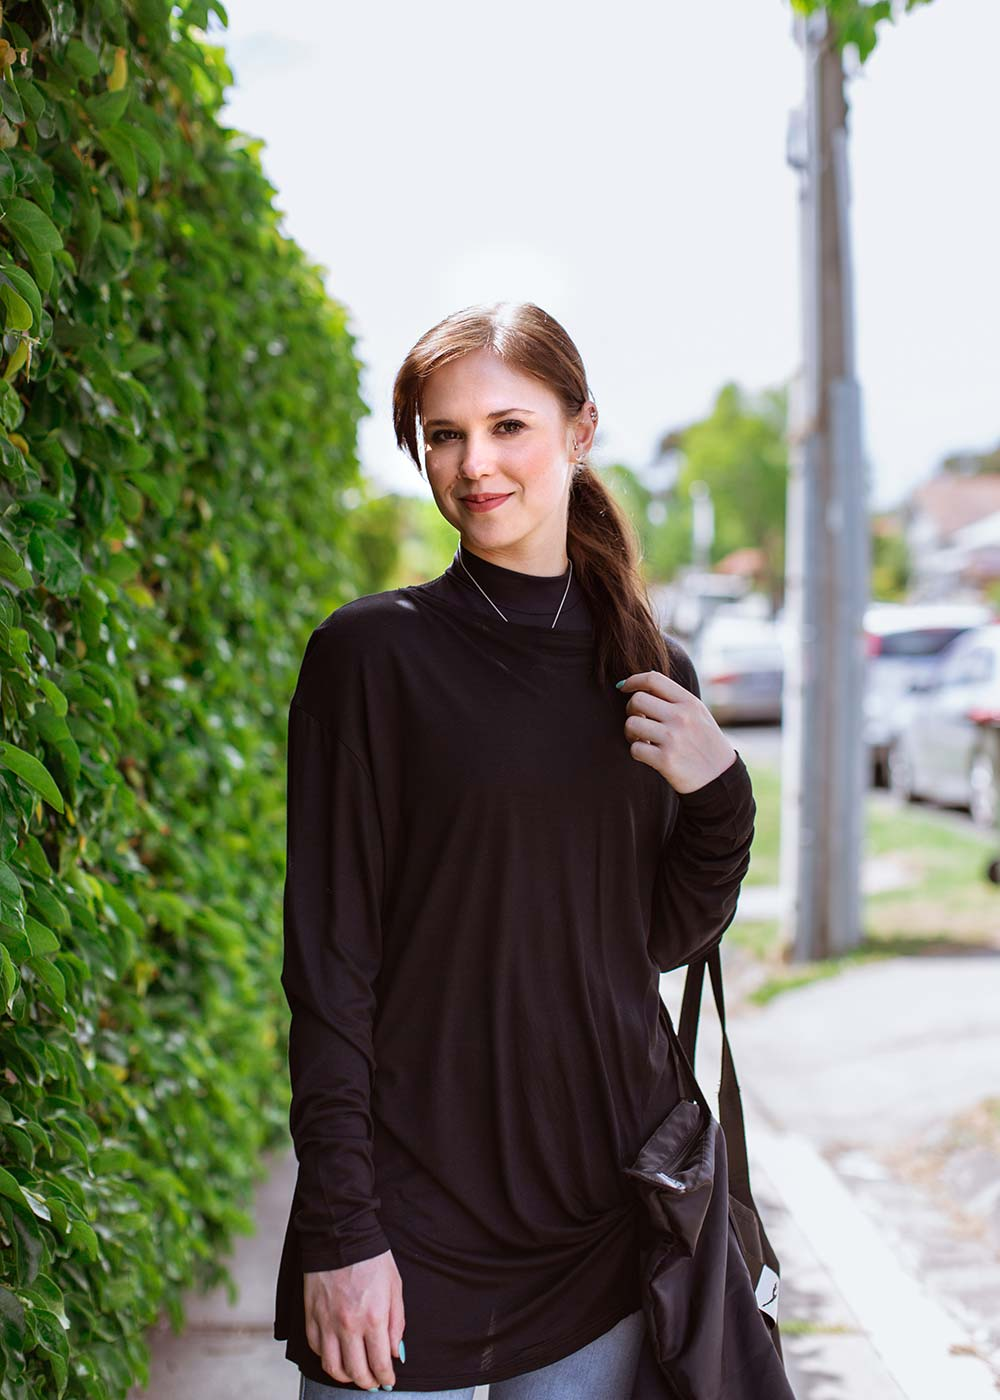 Amy wears the  Aubrey Knot Long Sleeve Tee  from the  Atelier Collection , the  Ivy Crop , and carries the  Dance Tote